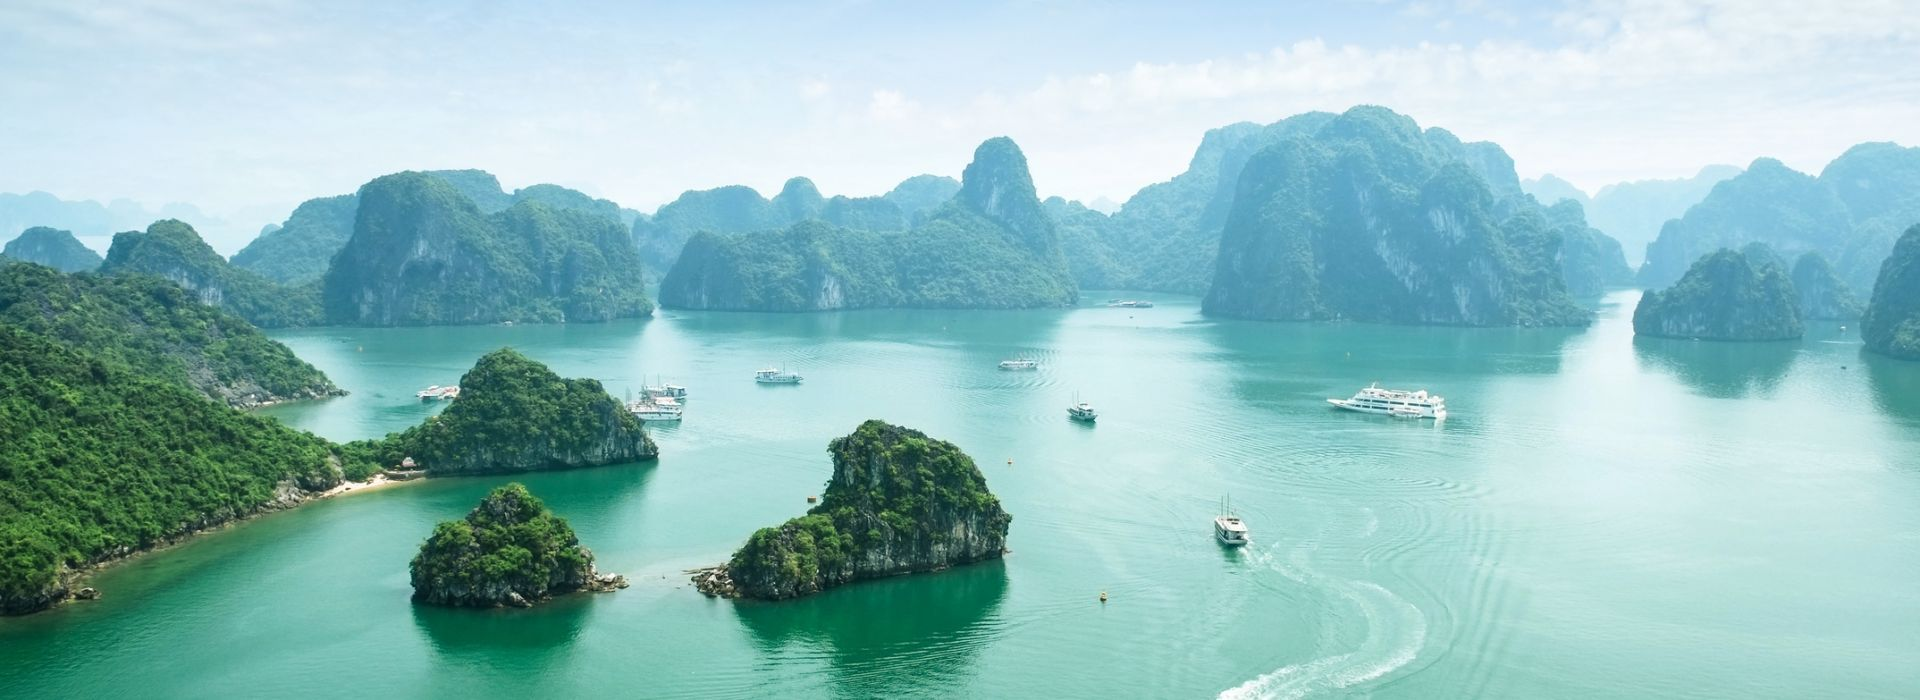 Sightseeing, attractions, culture and history Tours in Ha Long Bay